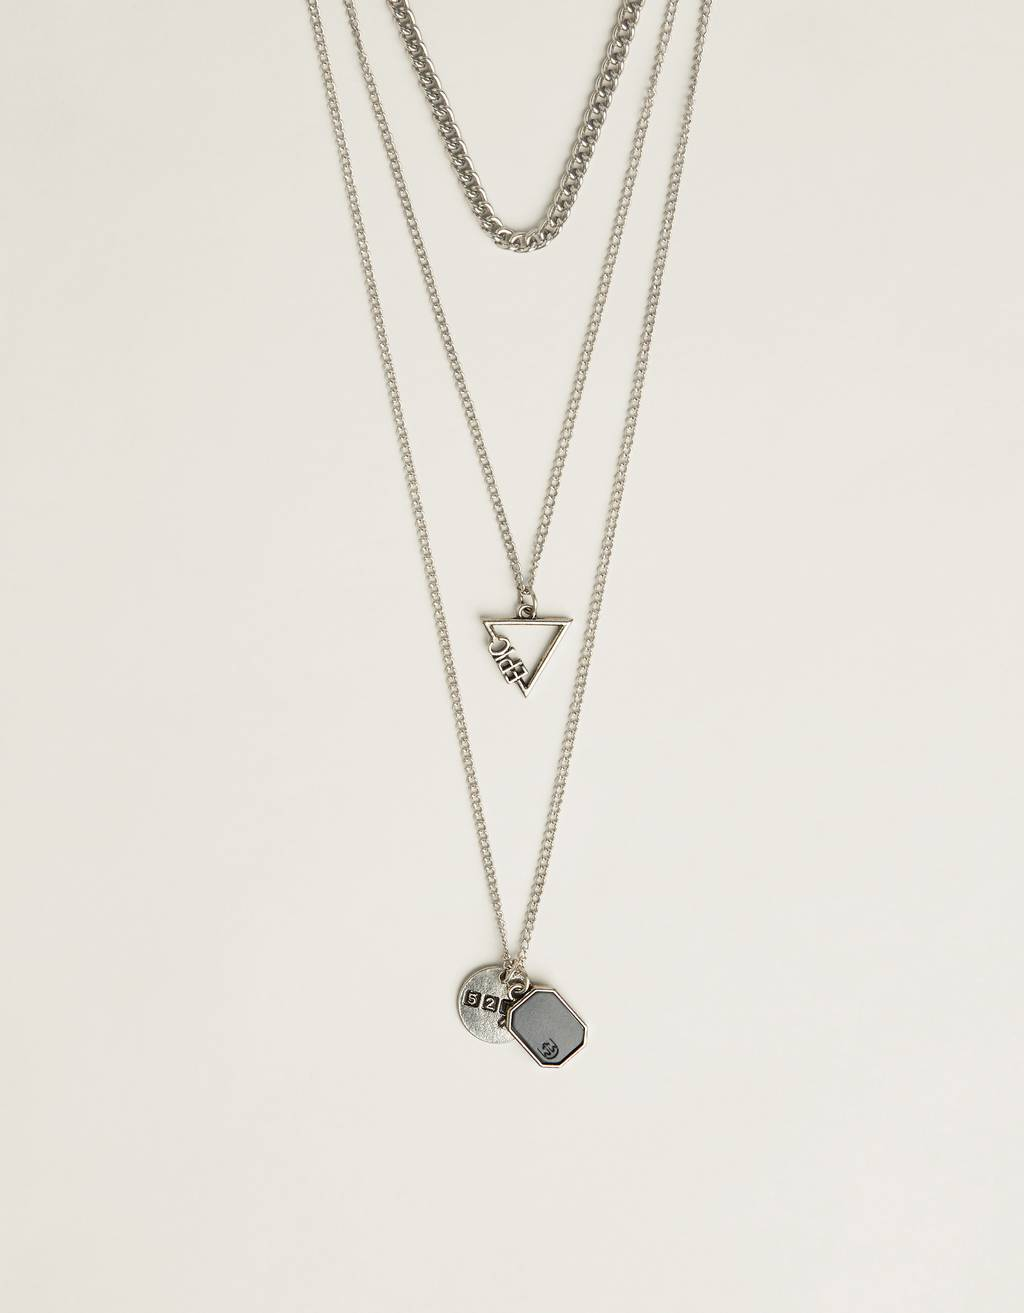 Chain necklace with triangular pendant